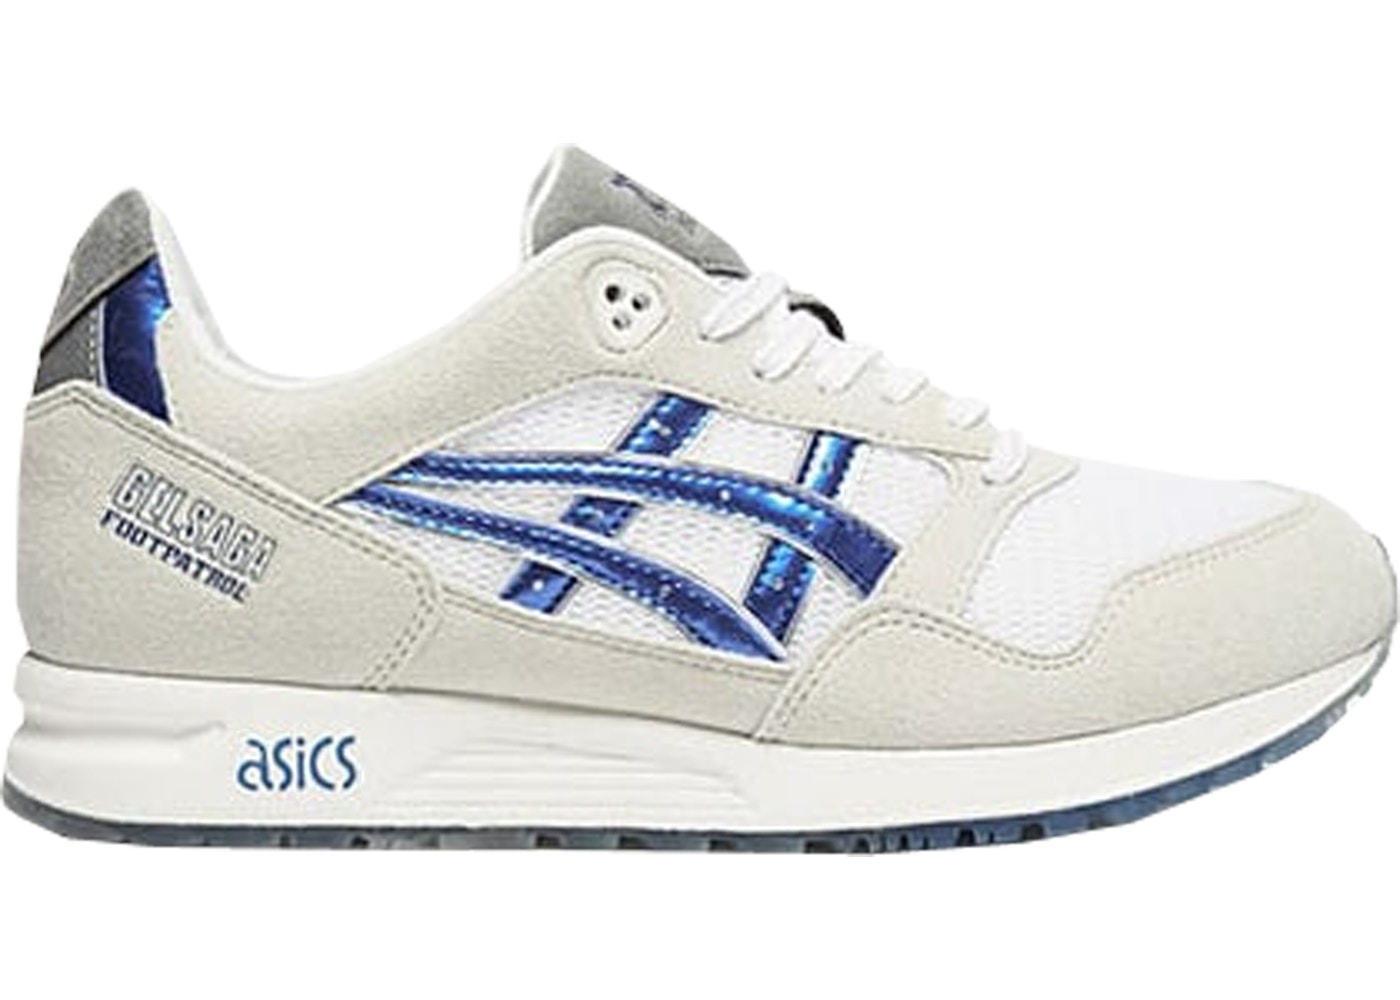 detailed look 3aa62 2ec2d Asics Gel-Saga Foot Patrol Gundam